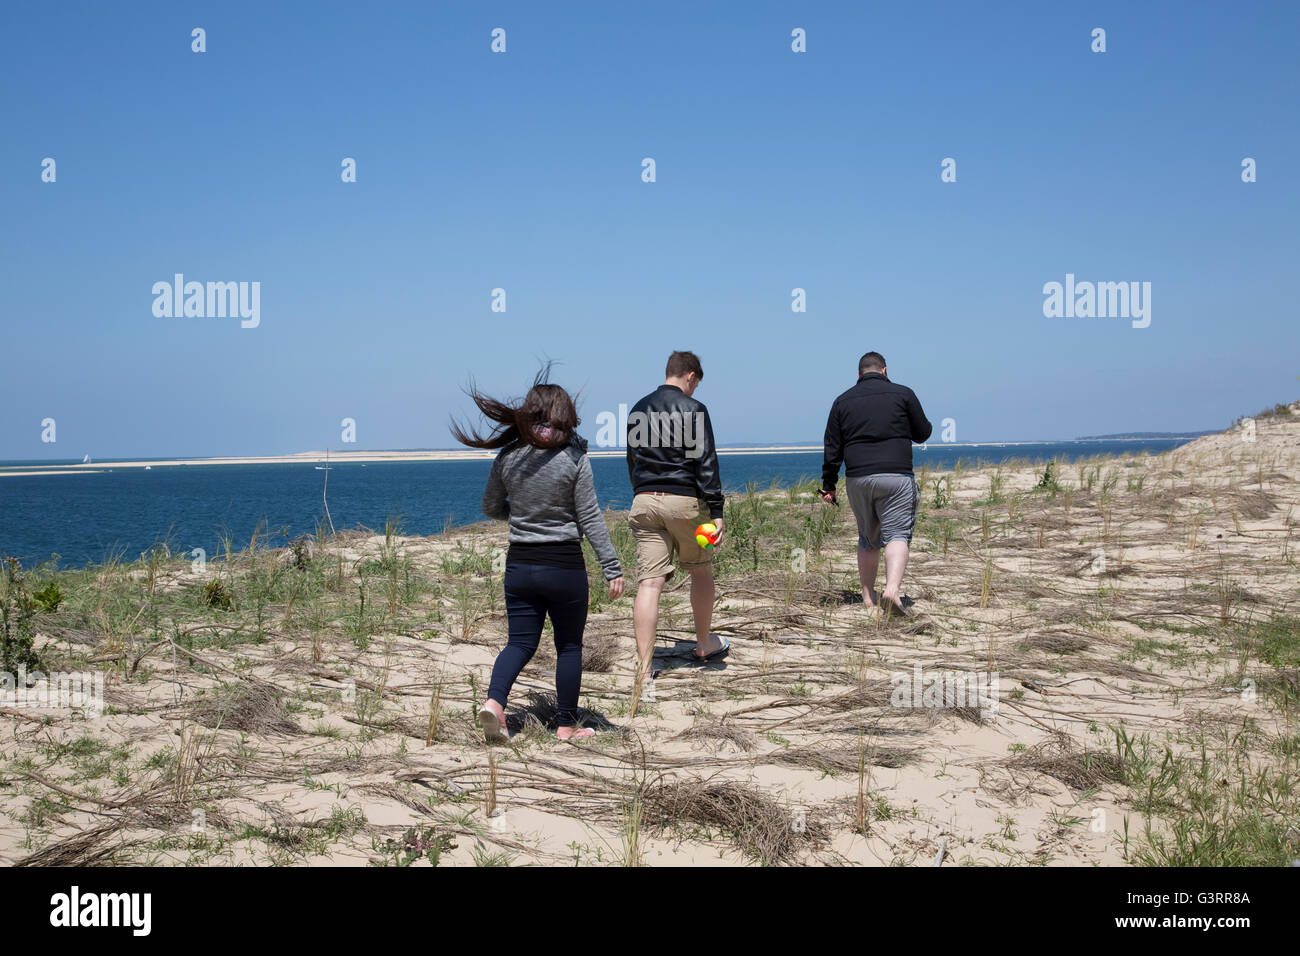 People trampling protected area with Marram grass planted to help stabilise sand dunes Great Dune of Pyla France - Stock Image